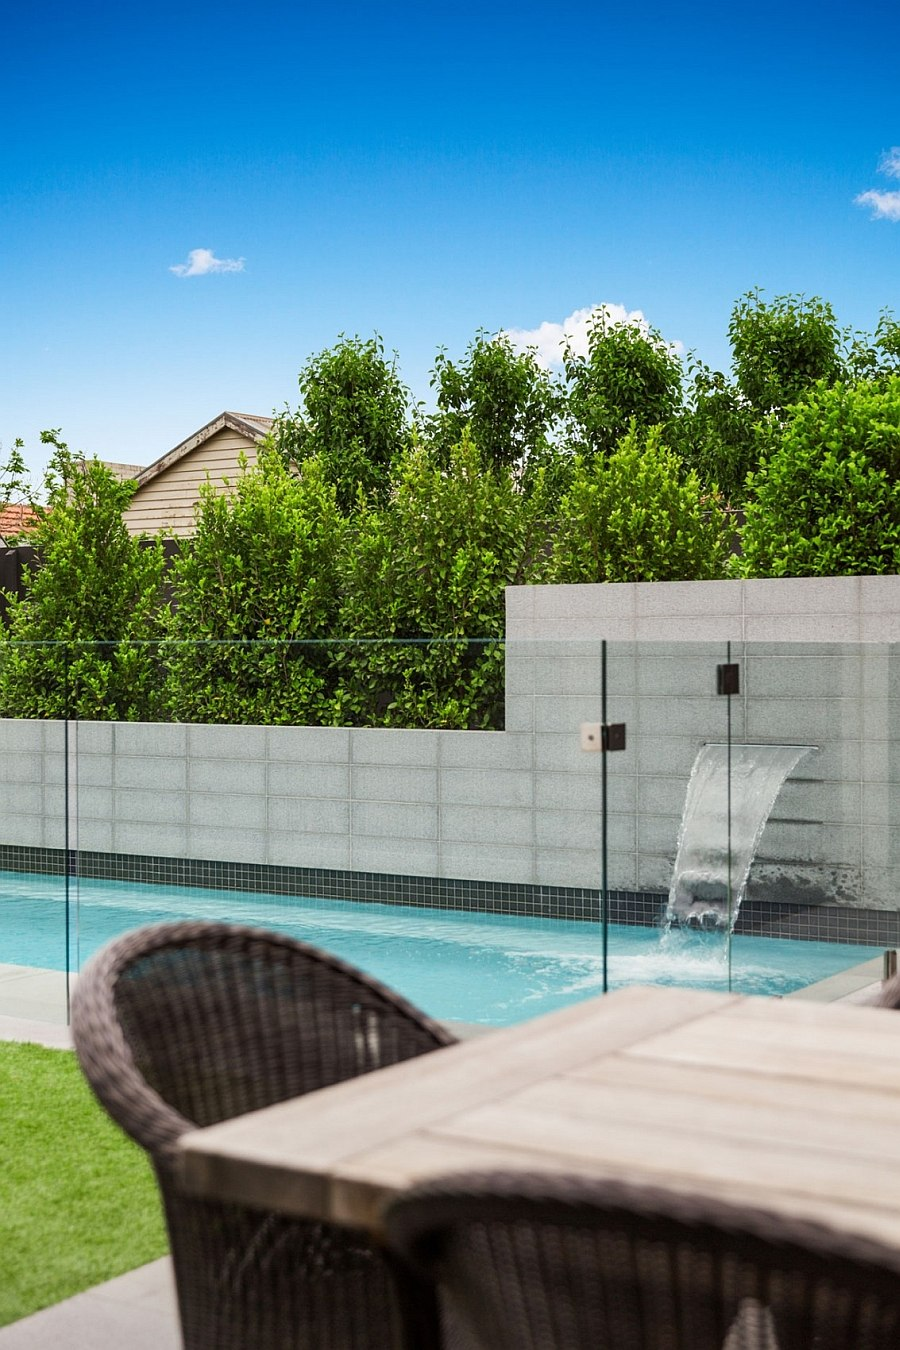 Outdoor pool and water feature for the modern home